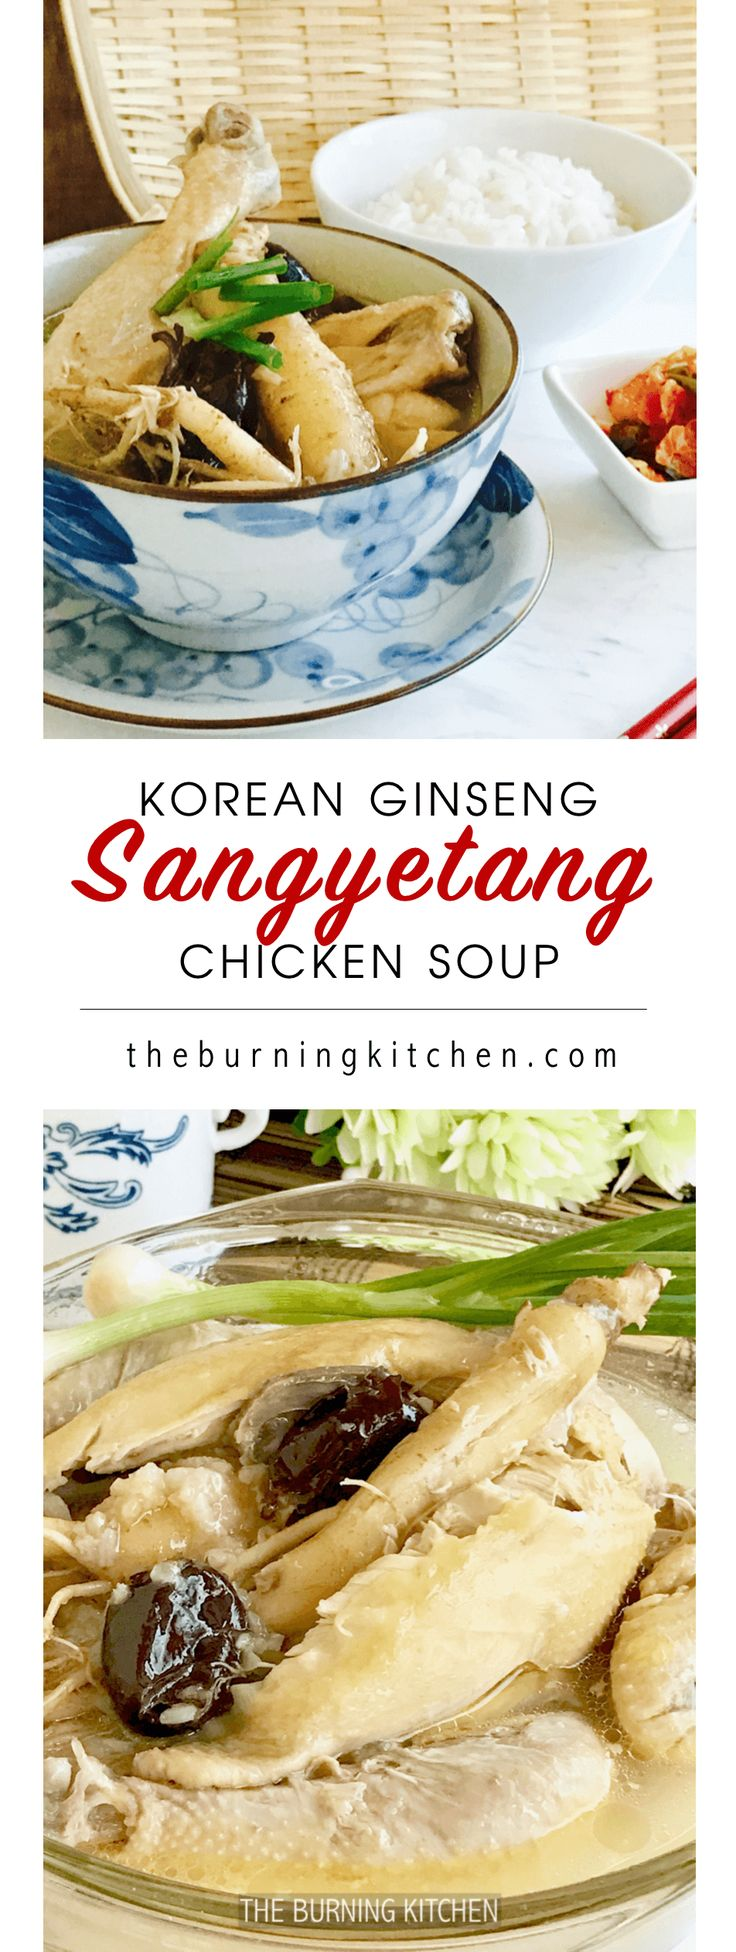 Korean Ginseng Chicken Soup, also known as Sangyetang, is a one-pot wonder that offers a great combination of nutritious soup and comfort food on cold and rainy days. It is also considered a tonic soup that is good for nourishing the body and help promote blood circulation.